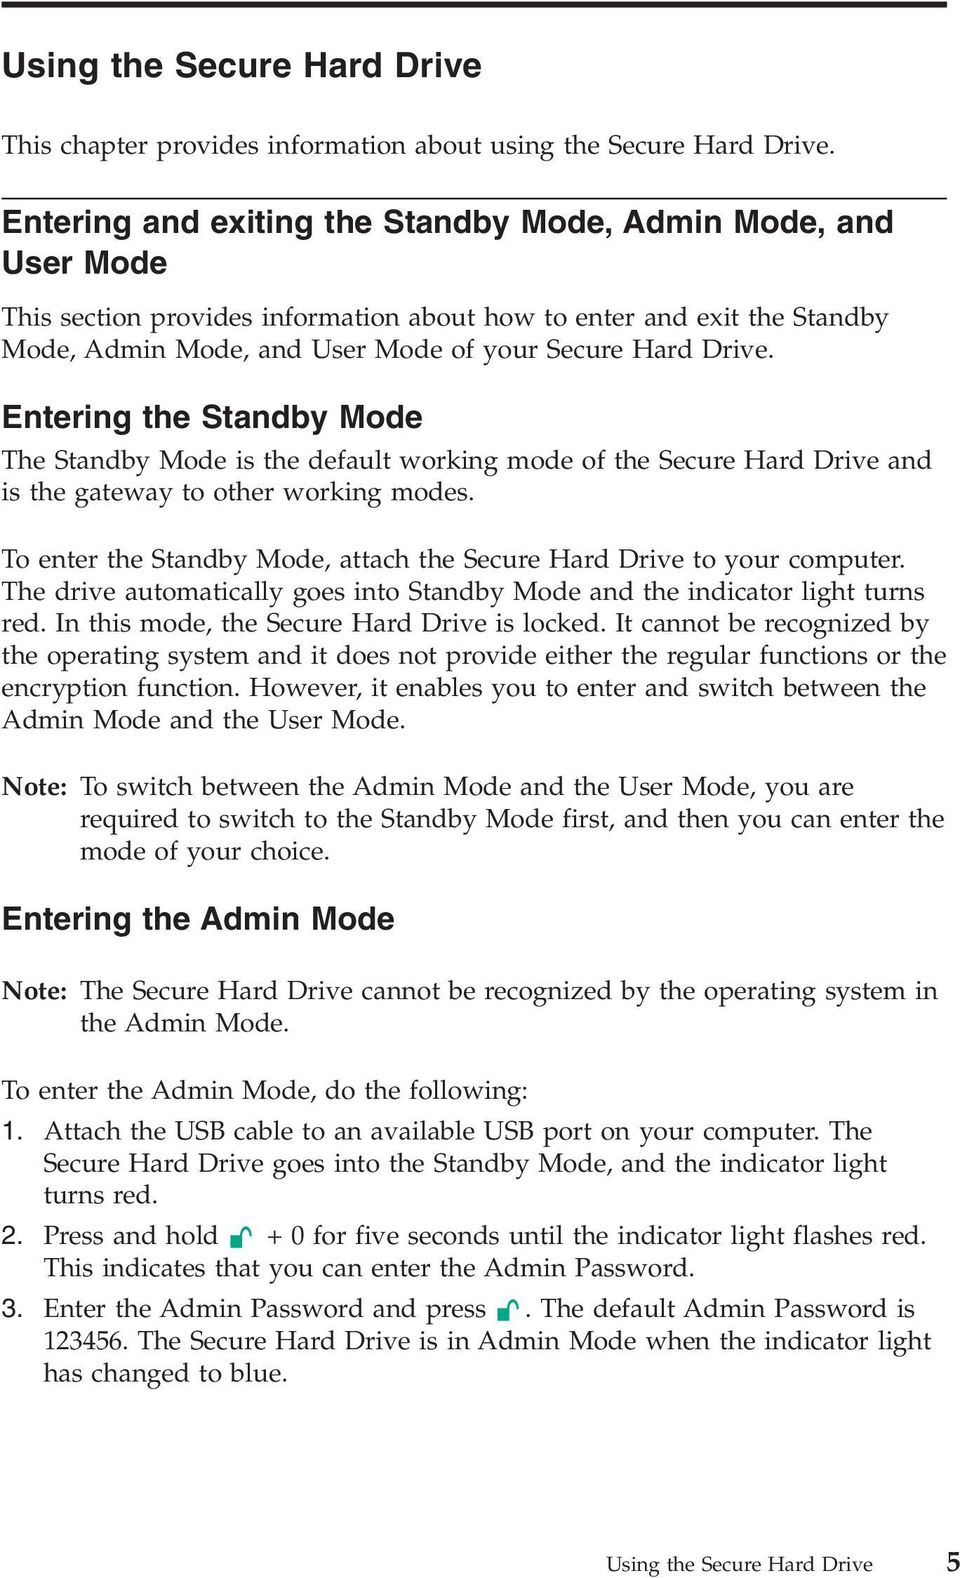 Entering the Standby Mode The Standby Mode is the default working mode of the Secure Hard Drive and is the gateway to other working modes.